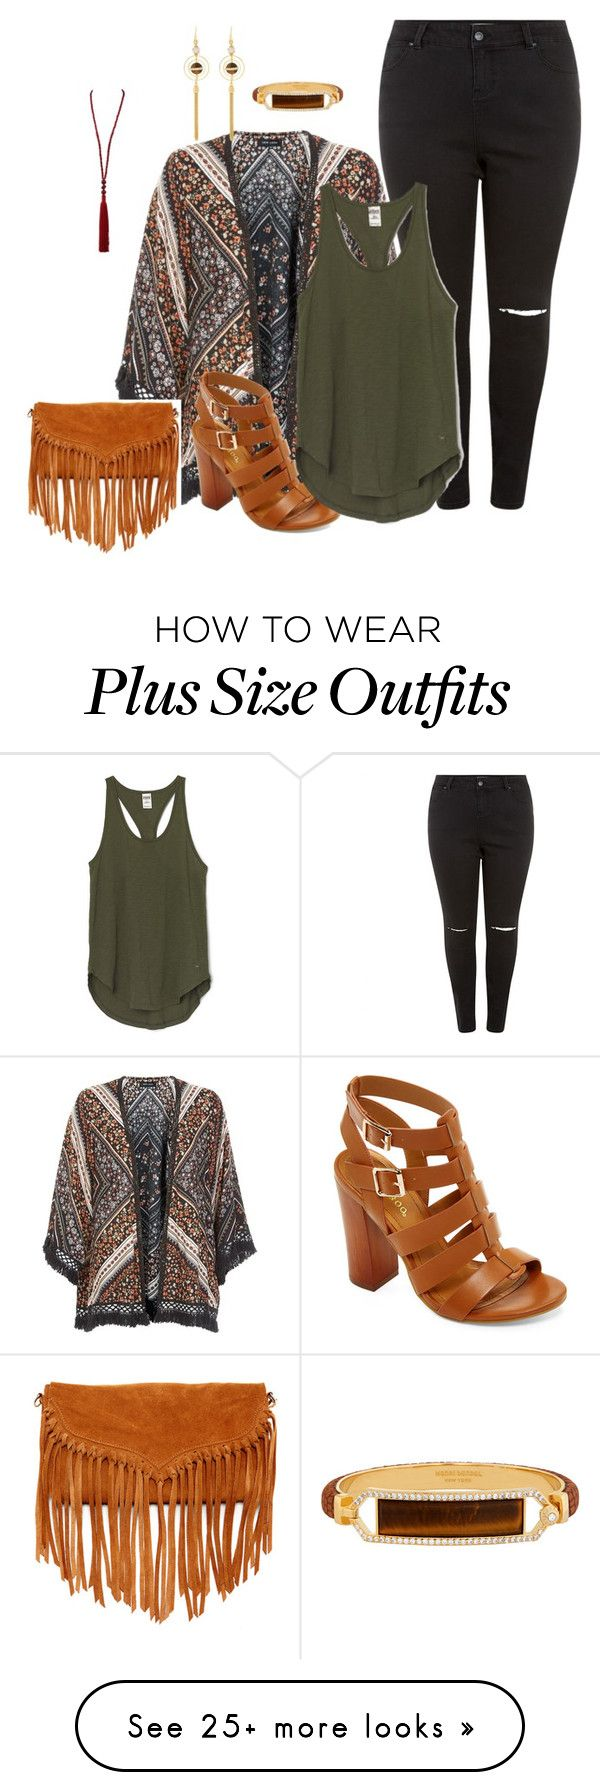 """plus size kimono style/boho chic"" by kristie-payne on Polyvore featuring New Look, Bamboo, SUSU, Oscar de la Renta and Henri Bendel"